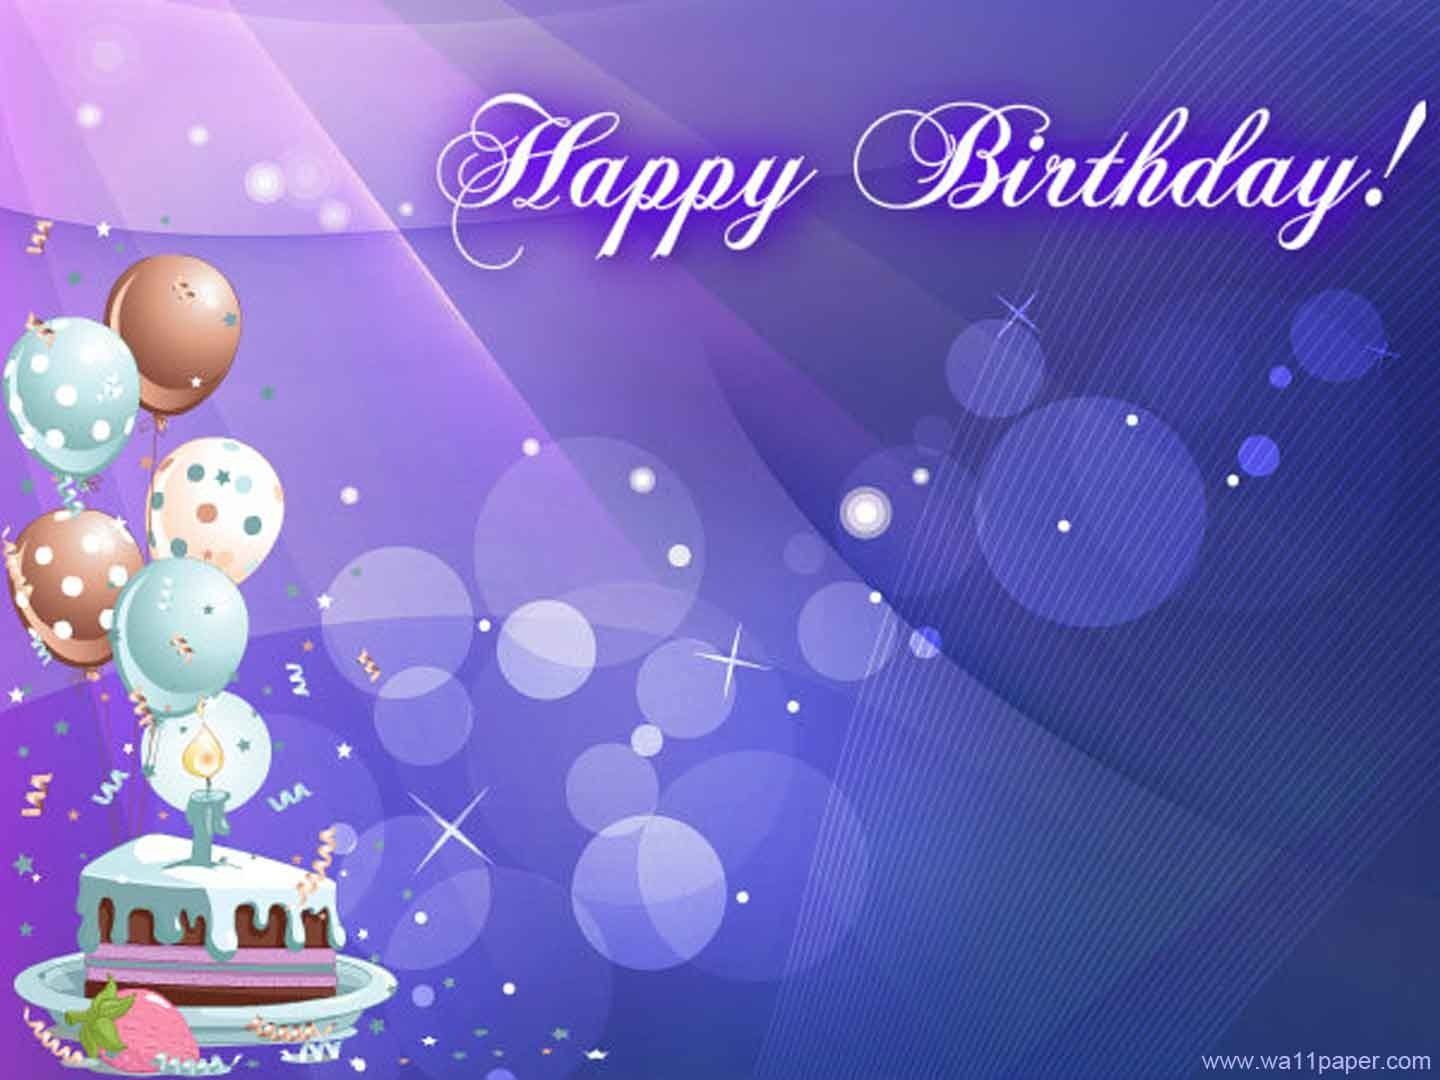 Birthday Wallpaper 4 1440 X 1080 Stmed Net In 2020 Happy Birthday Blue Birthday Background Happy Birthday Wishes Images